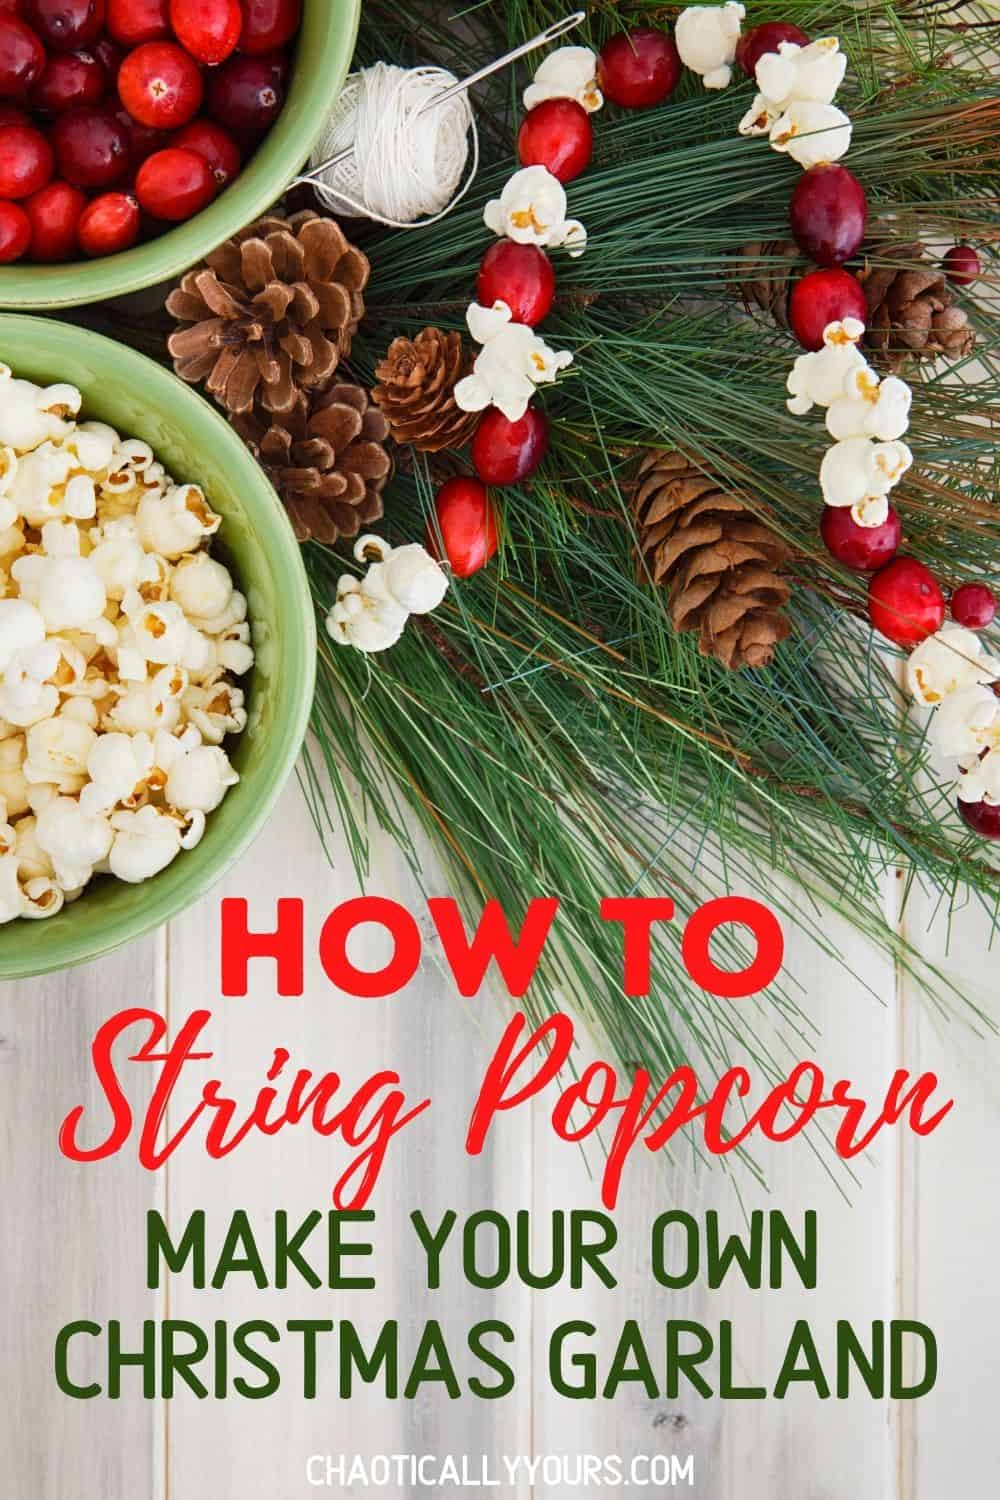 How To String Popcorn pin image